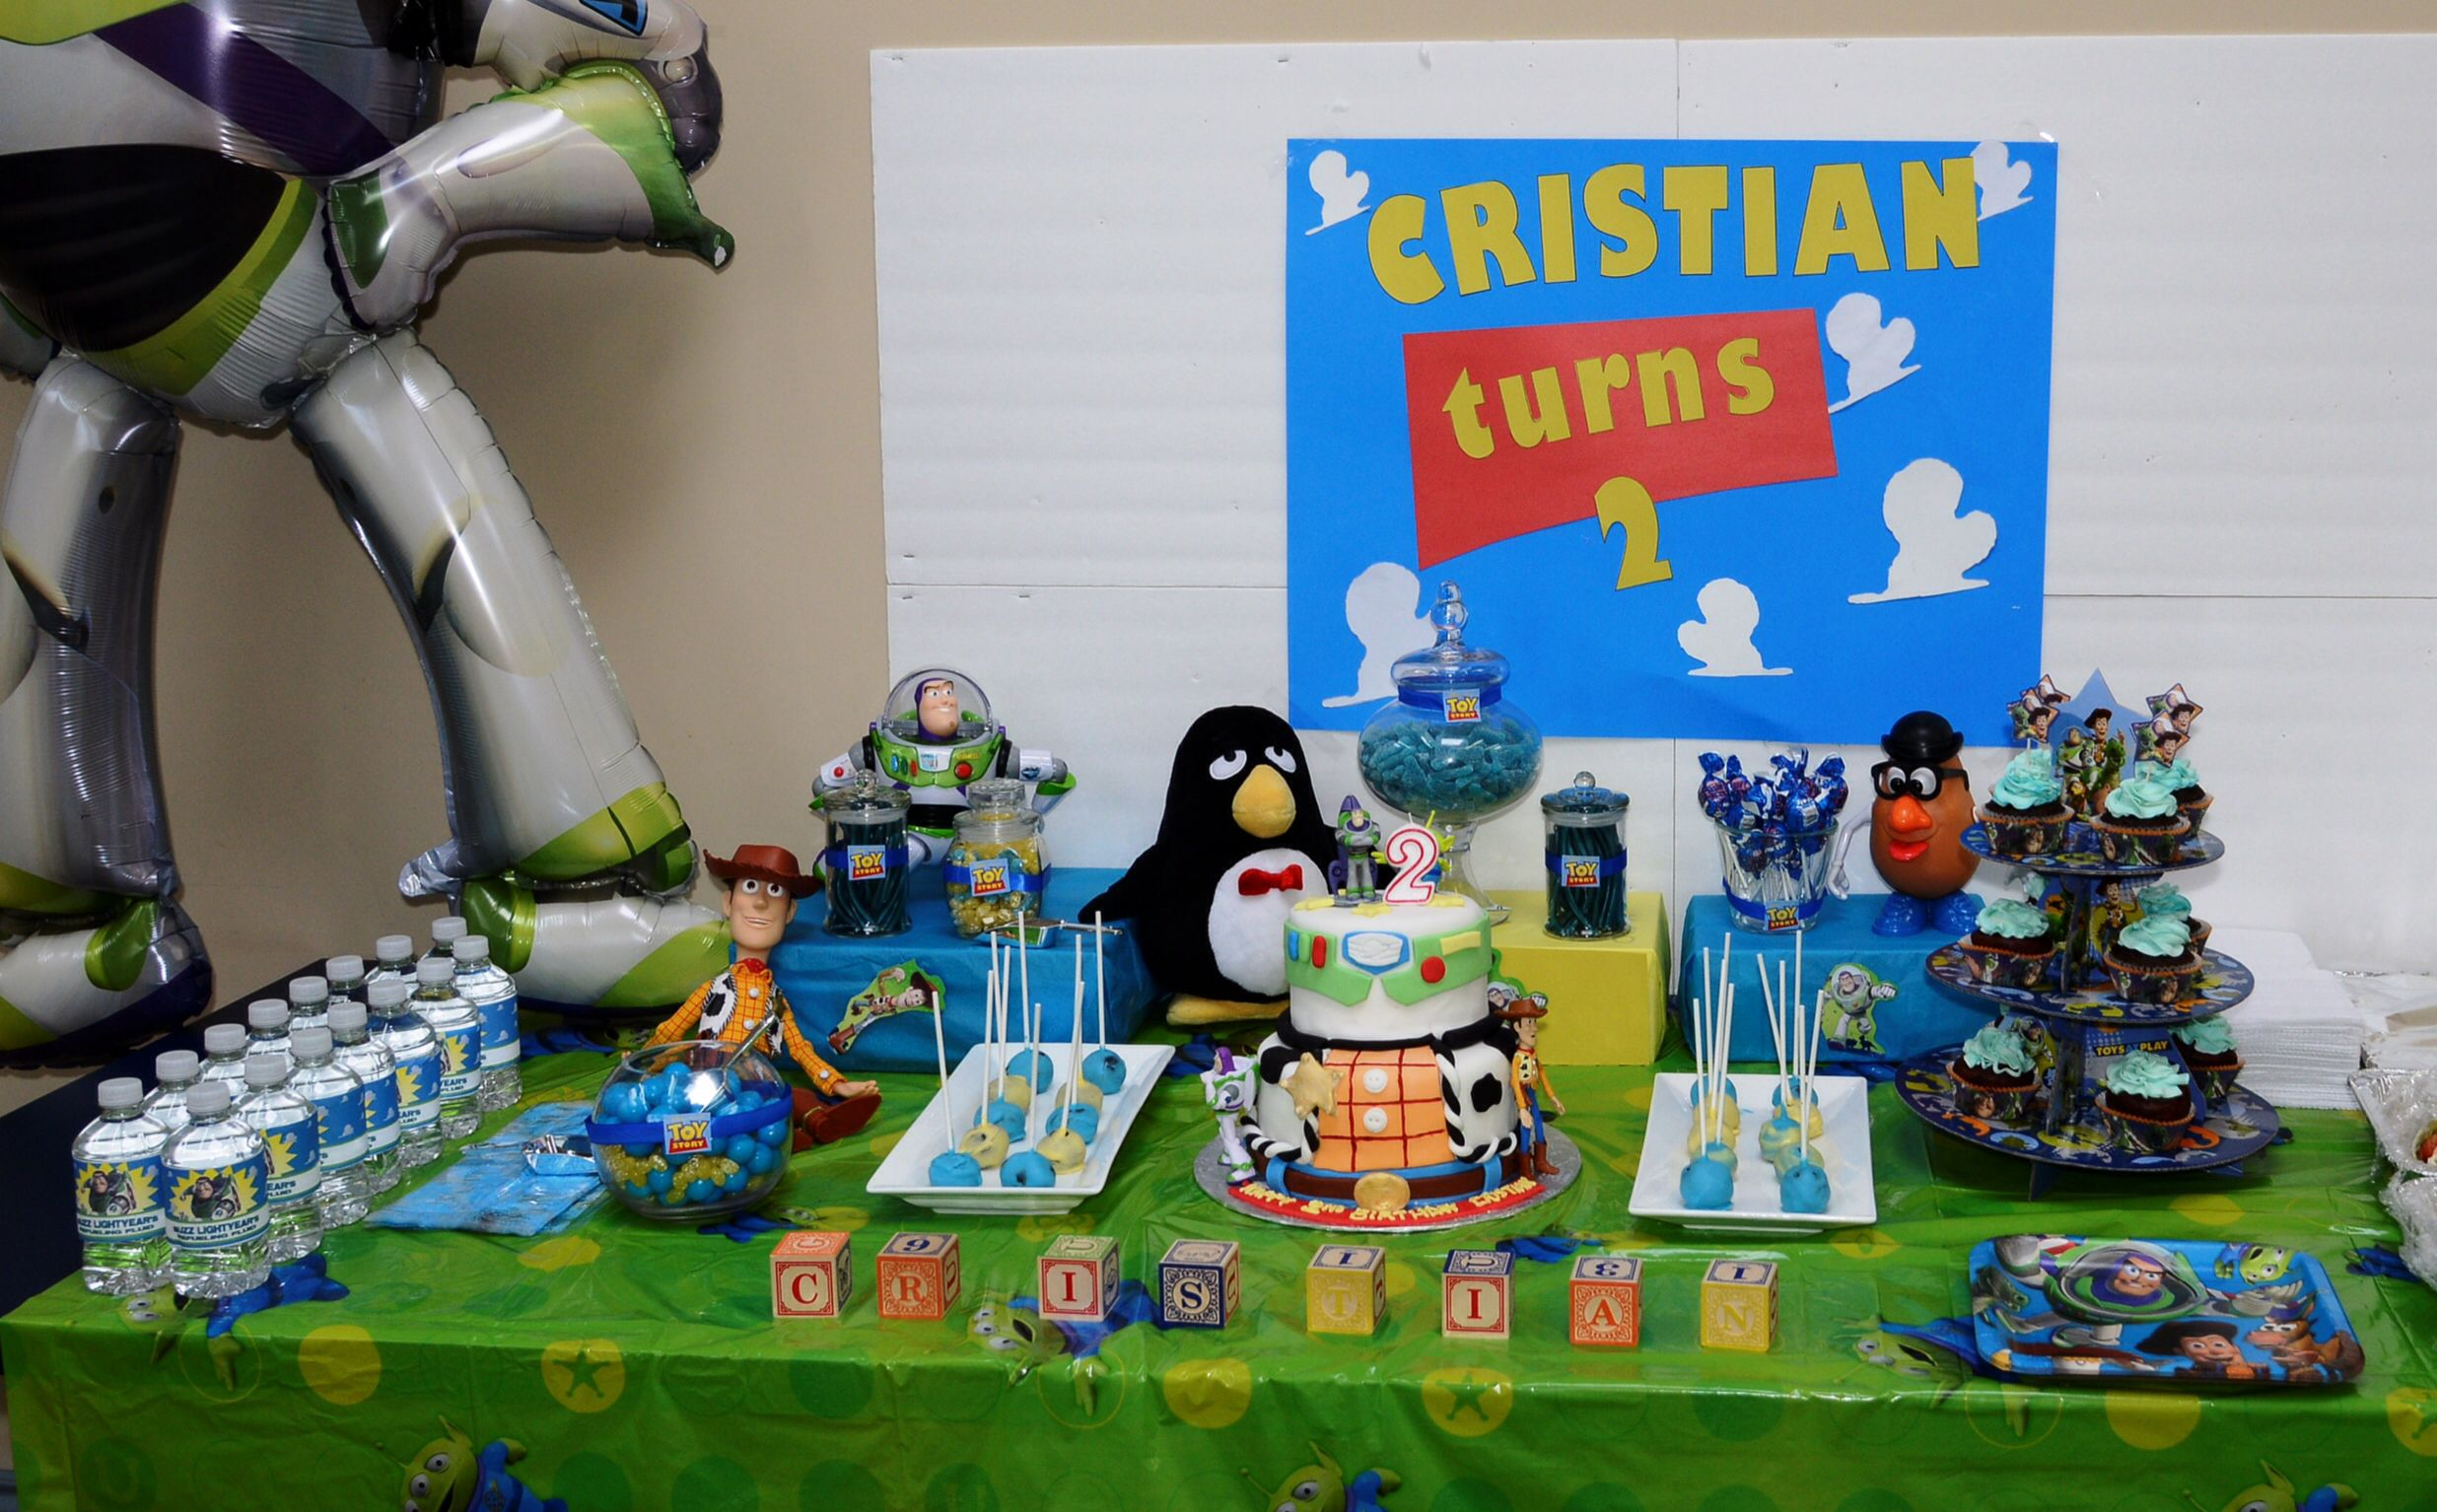 Games To Play At Toy Story Birthday Party : Kara s party ideas toy story themed birthday party kara s party